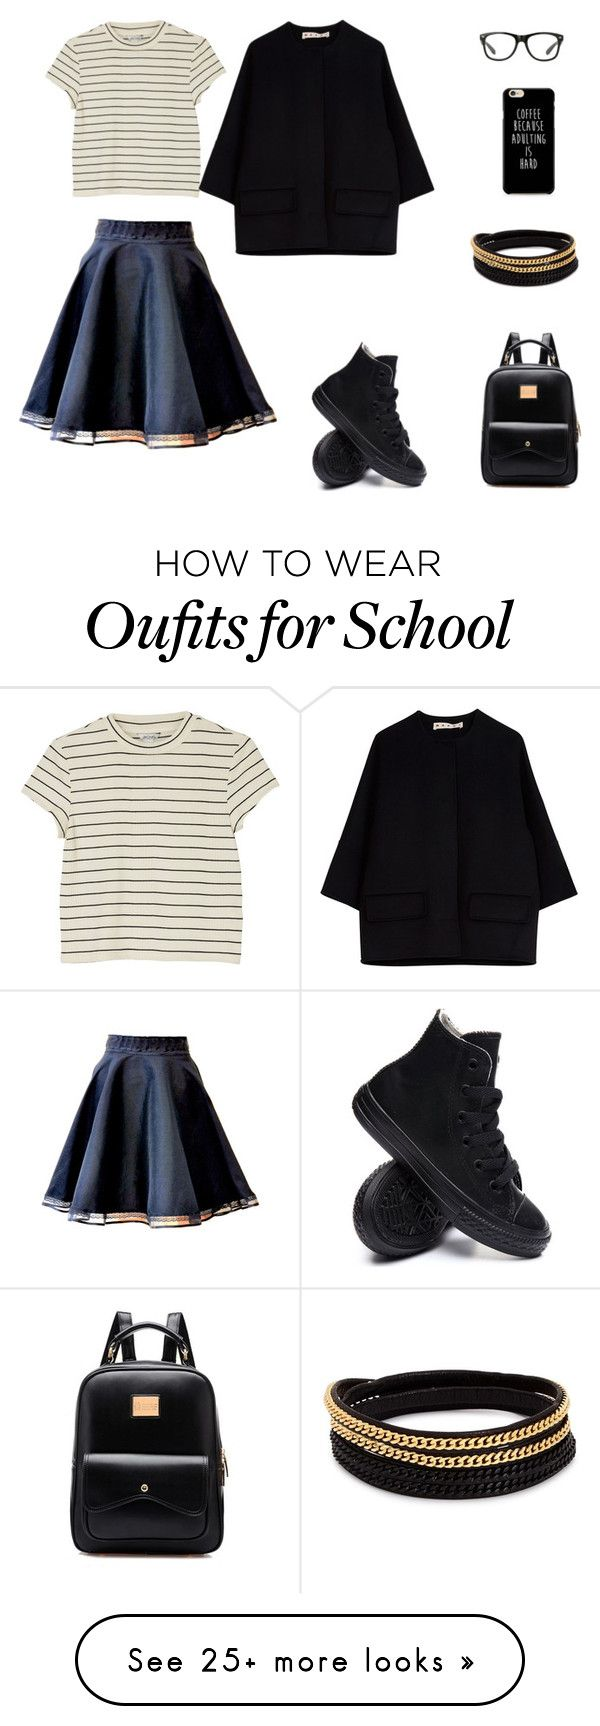 """School form"" by milena-roul on Polyvore featuring Monki, Marni, Converse and Vita Fede"